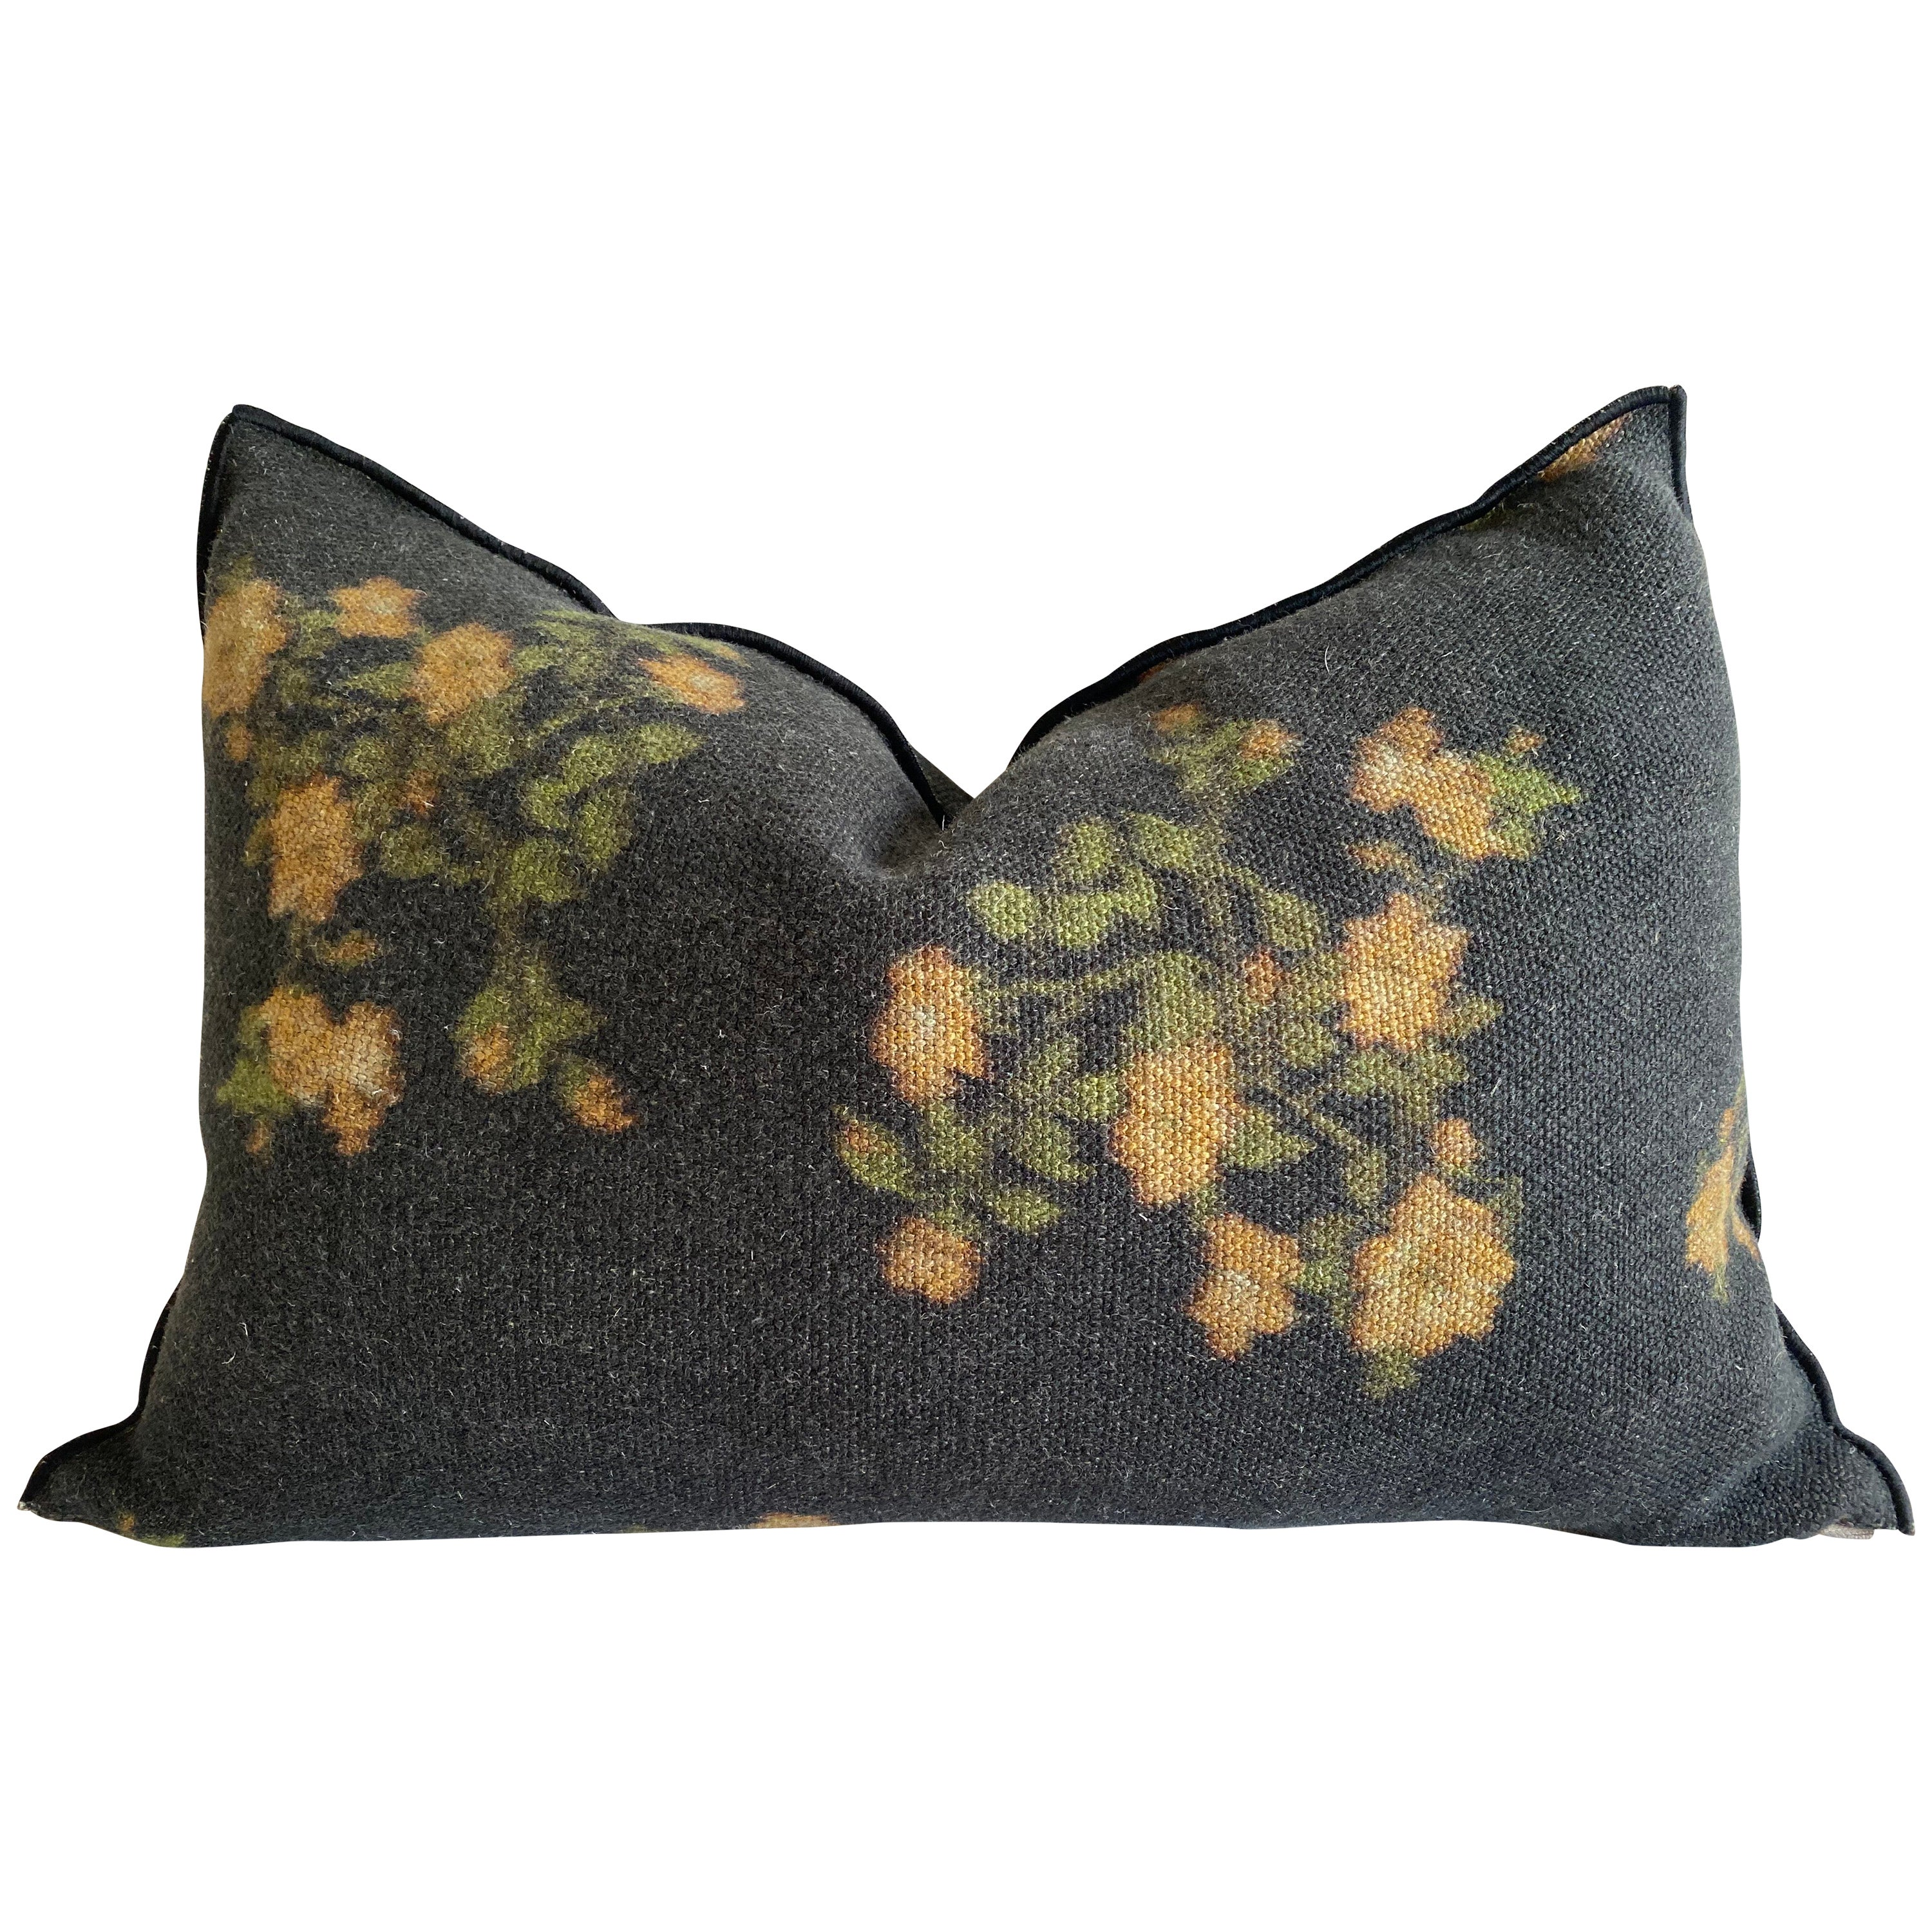 European Linen Black Roses Lumbar Accent Pillow with Down Insert